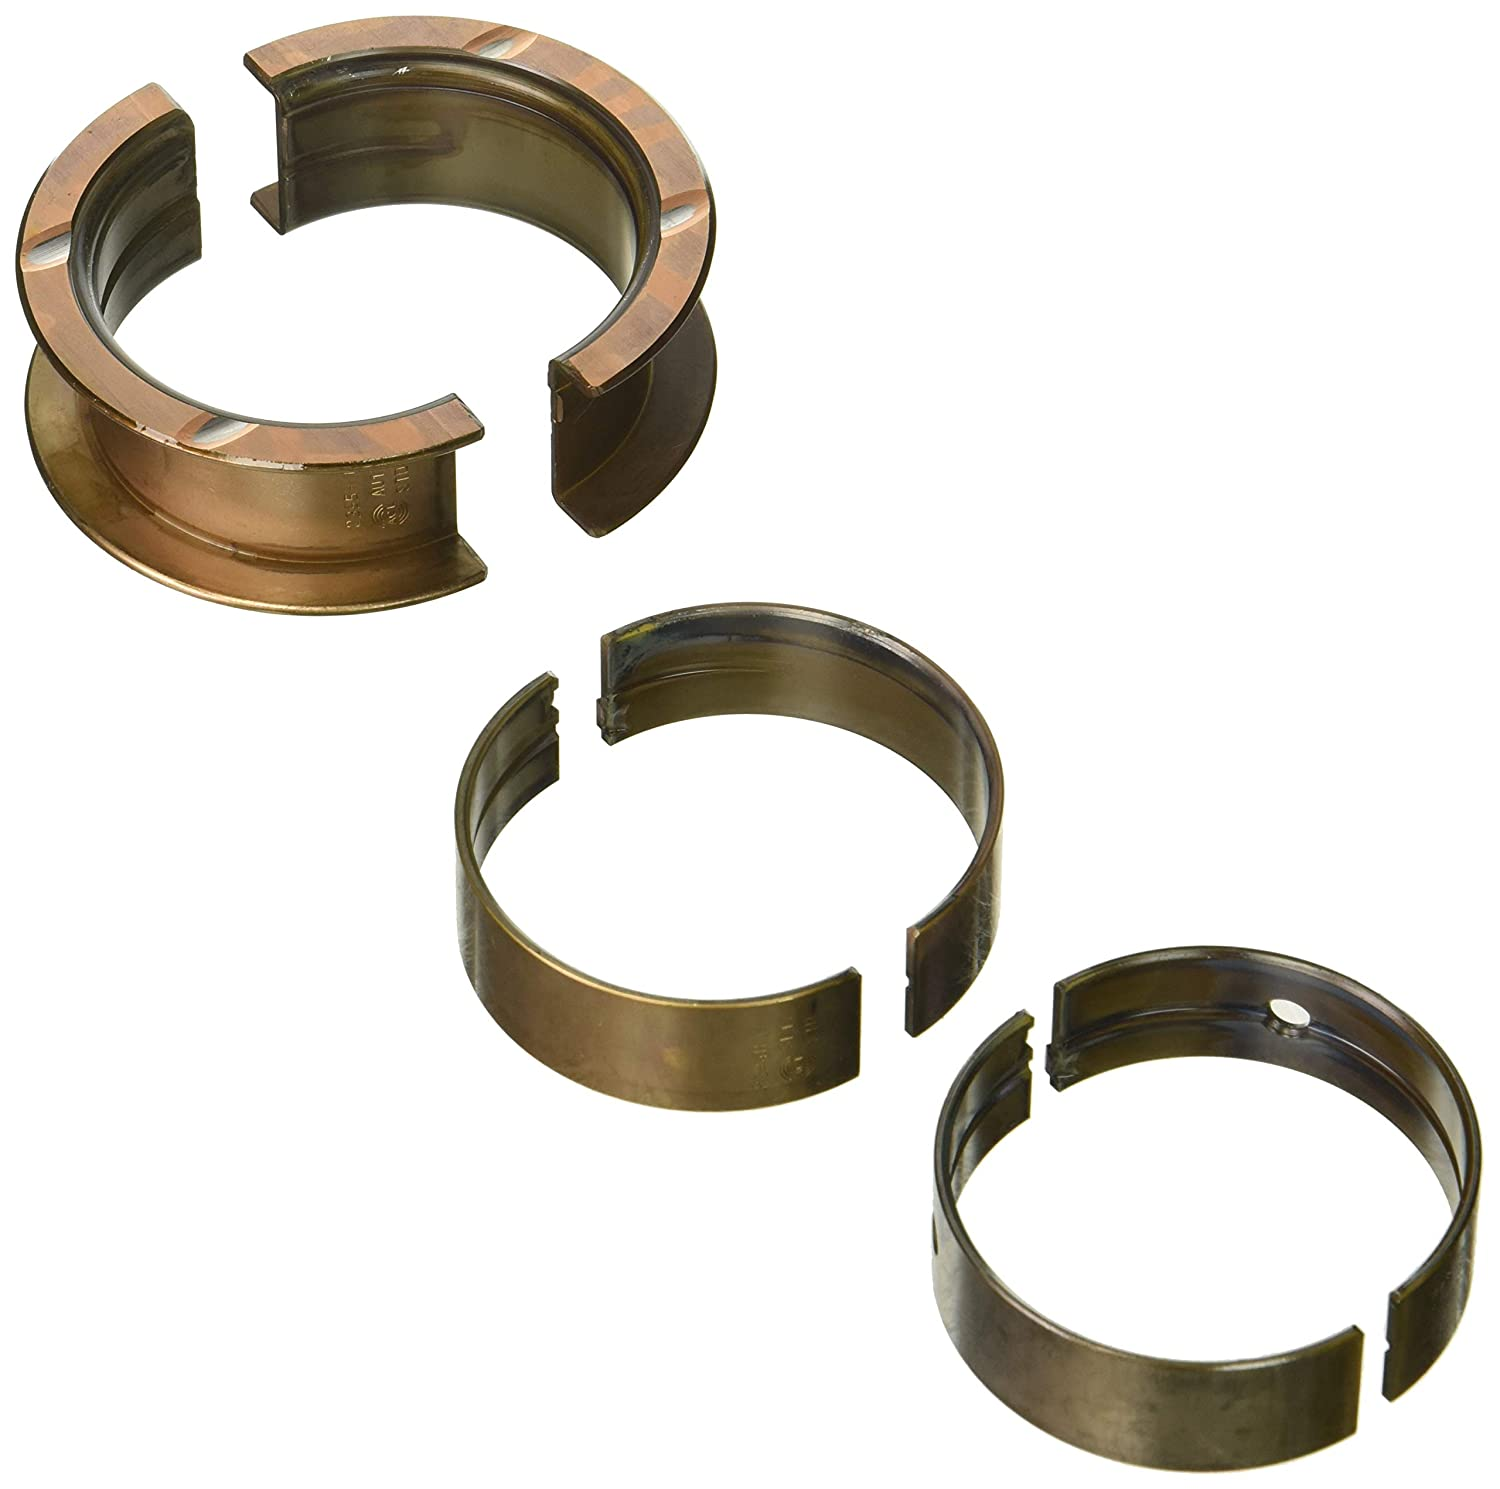 ACL (7M2394H-STD) Standard Size High Performance Main Bearing Set for Nissan